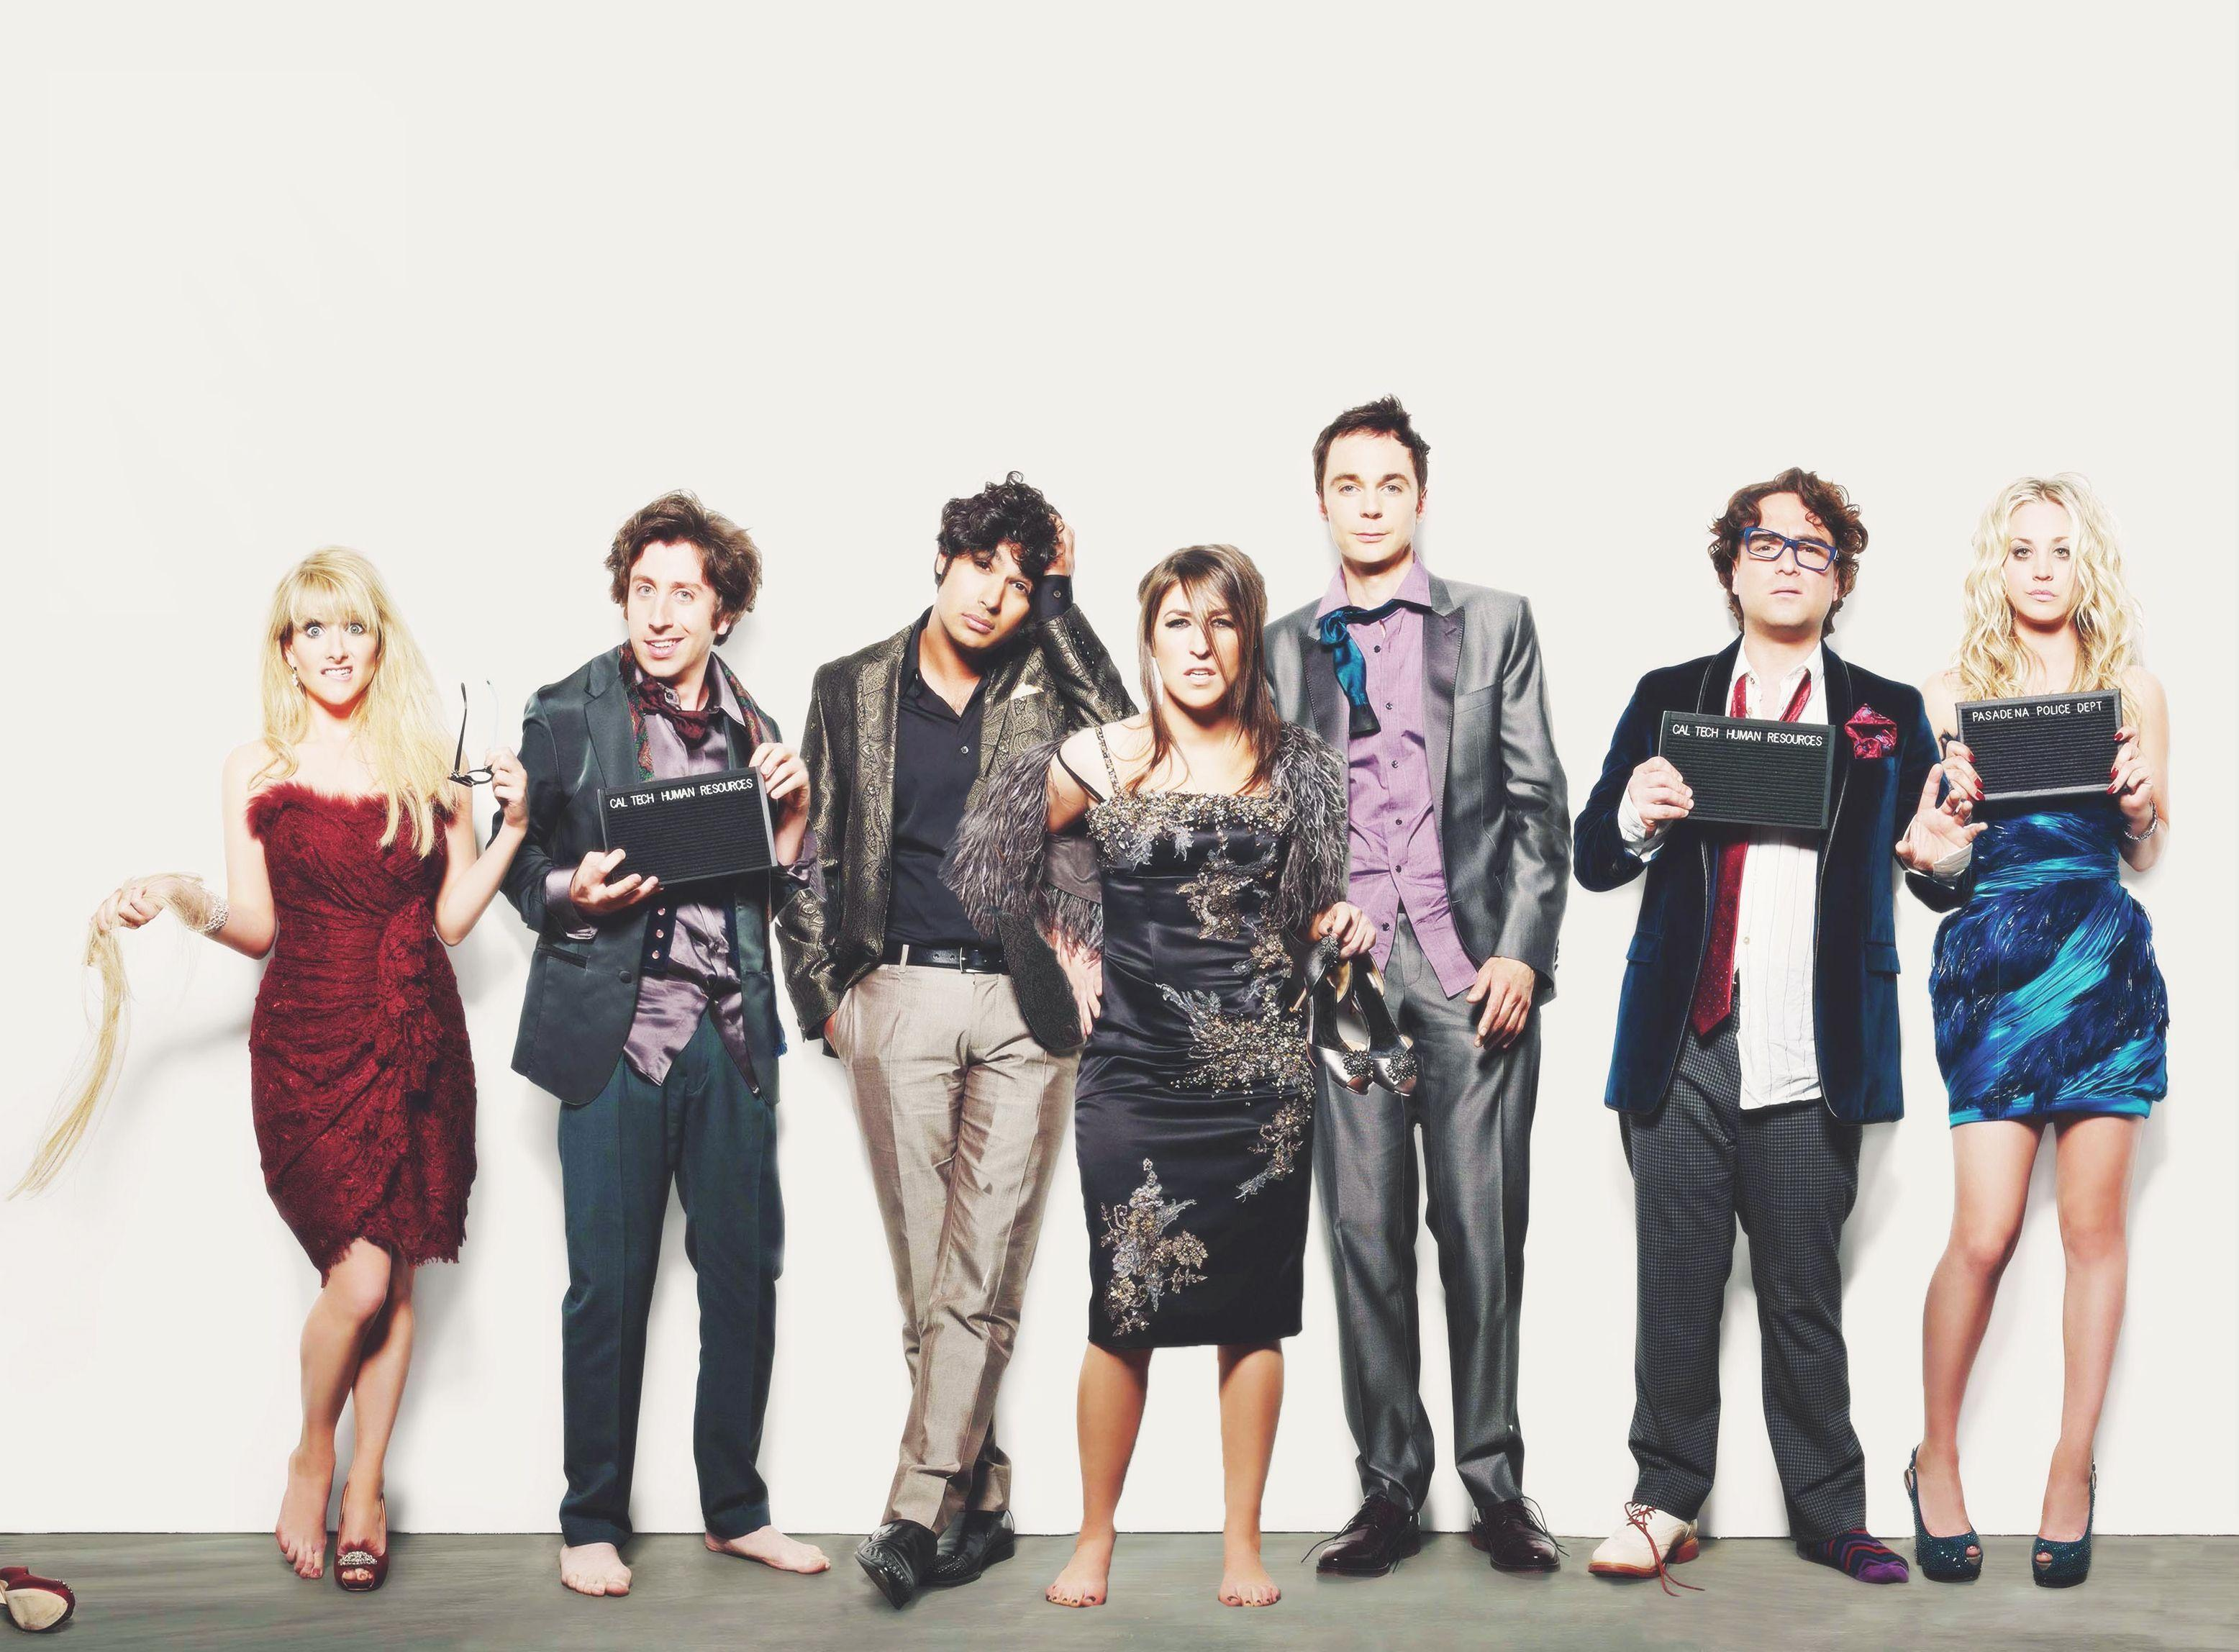 Catch the complete first season of The Big Bang Theory on DVD with this great collection available now at Amazoncom Movies amp TV